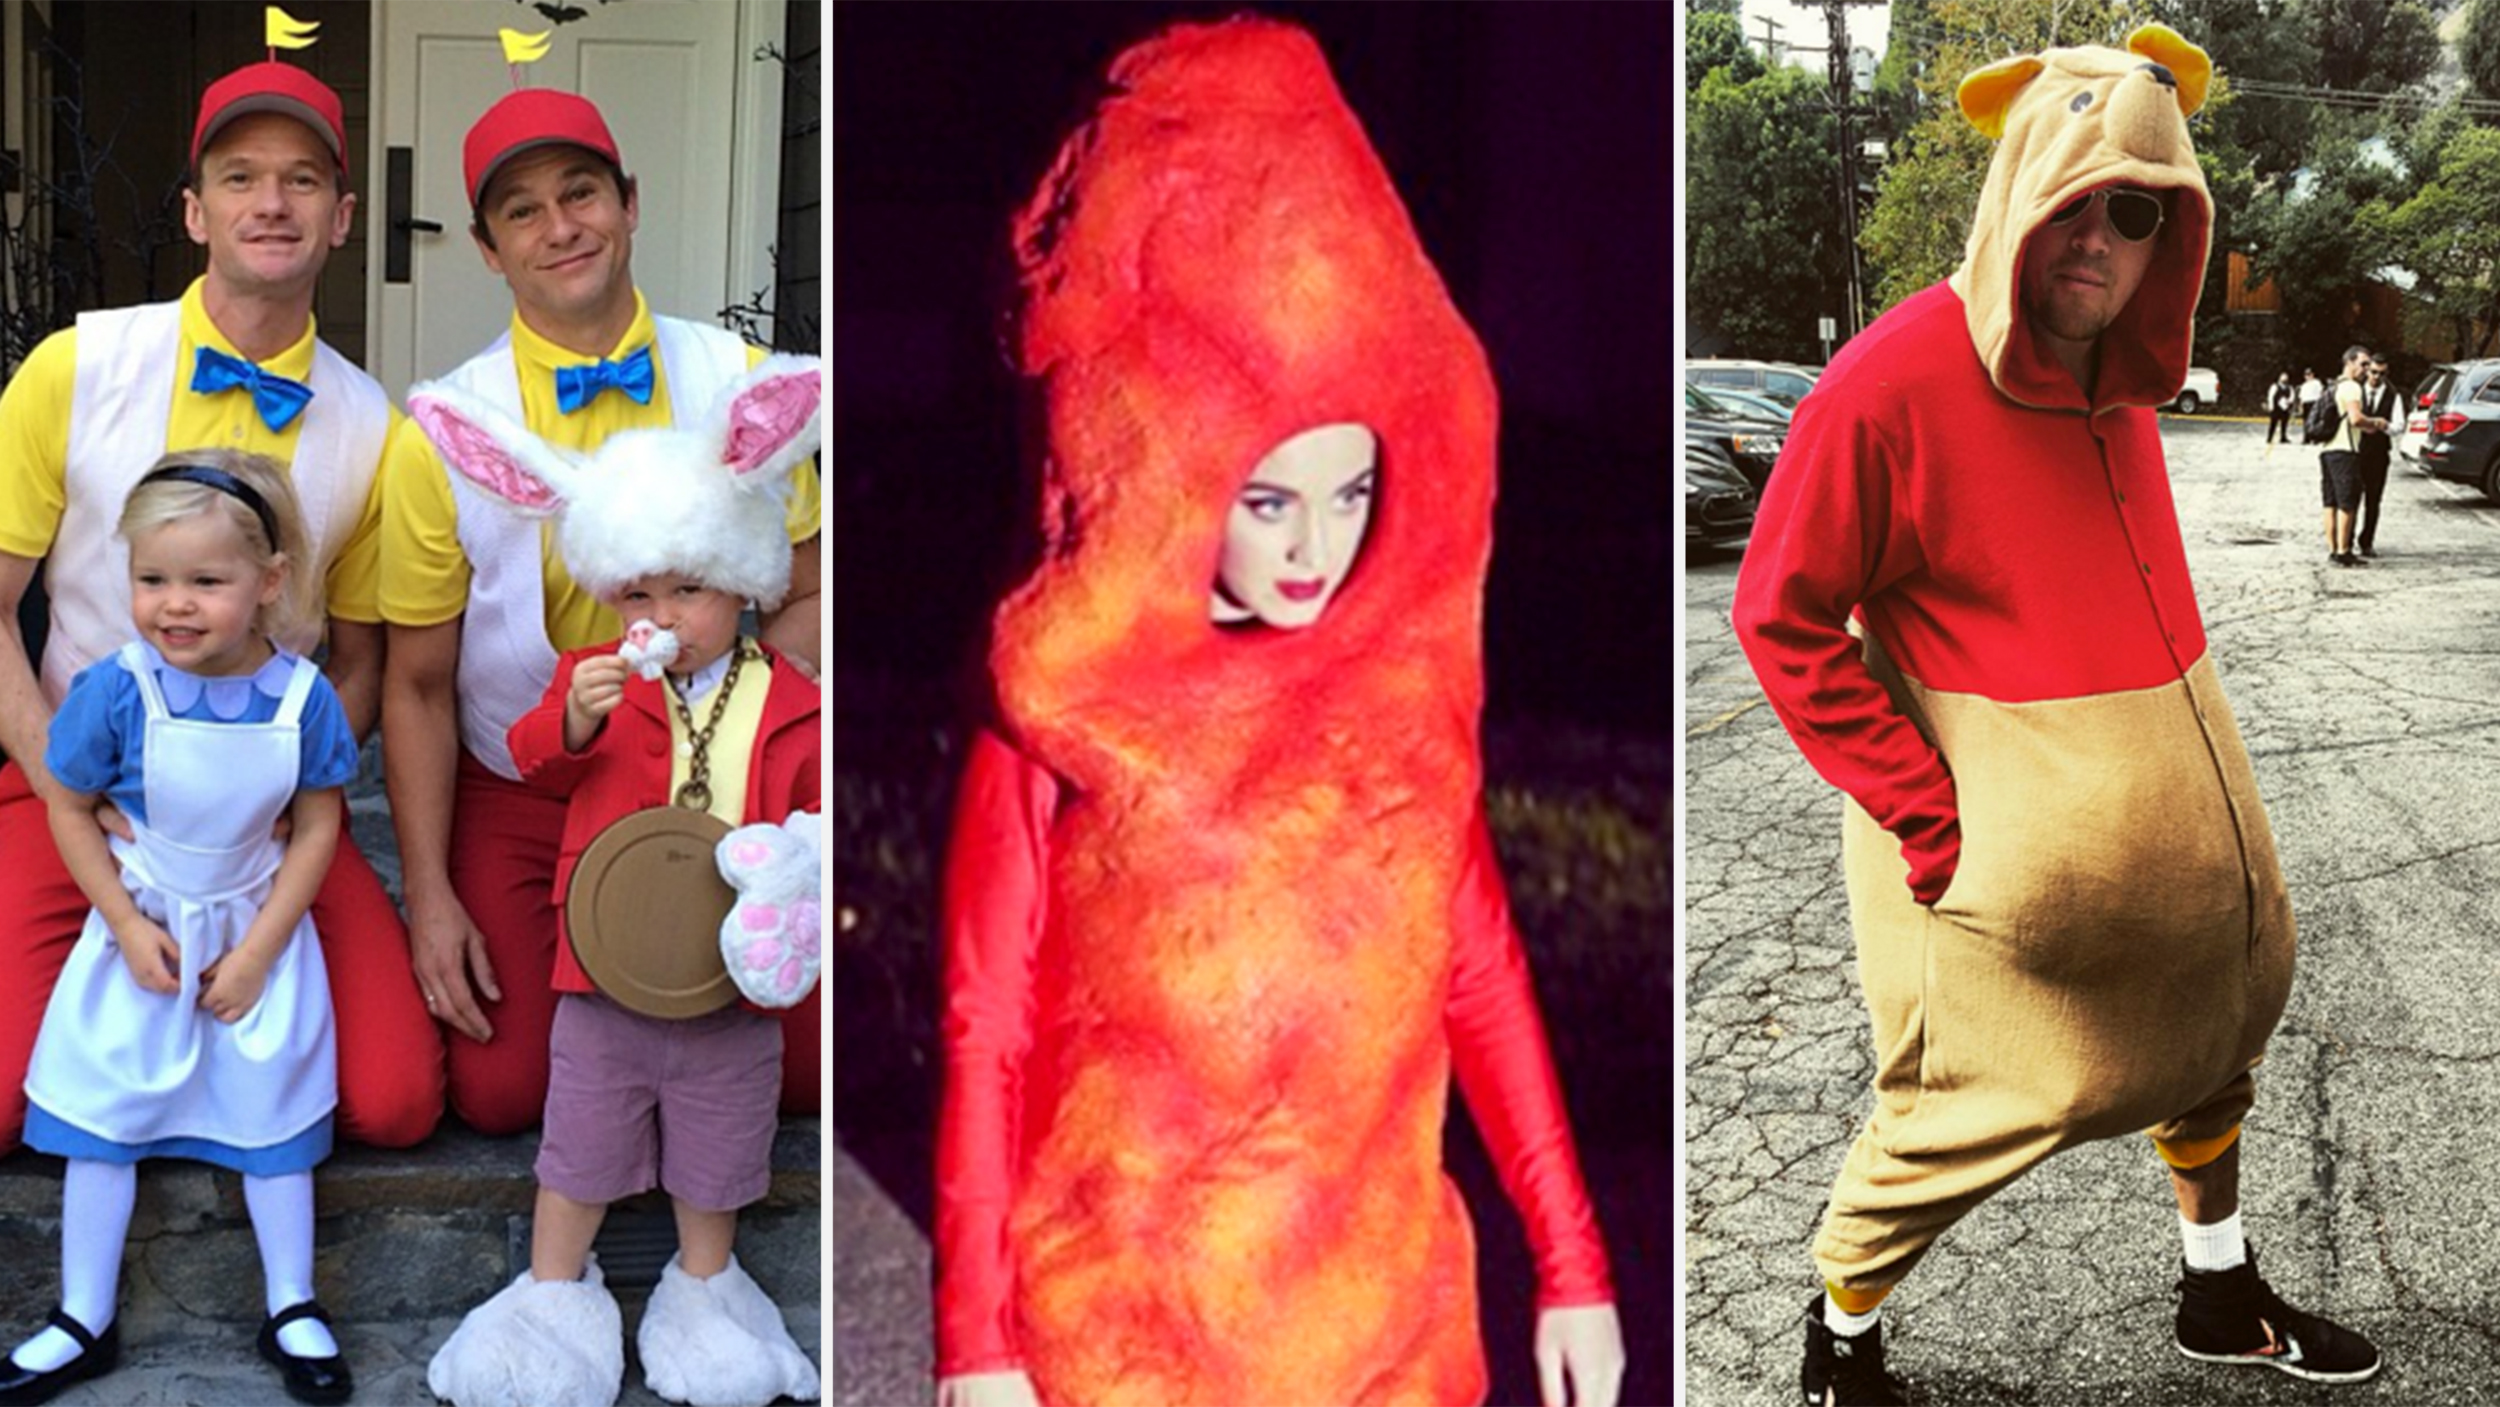 5 Celebrity Halloween Costume Ideas! Ariana ... - YouTube